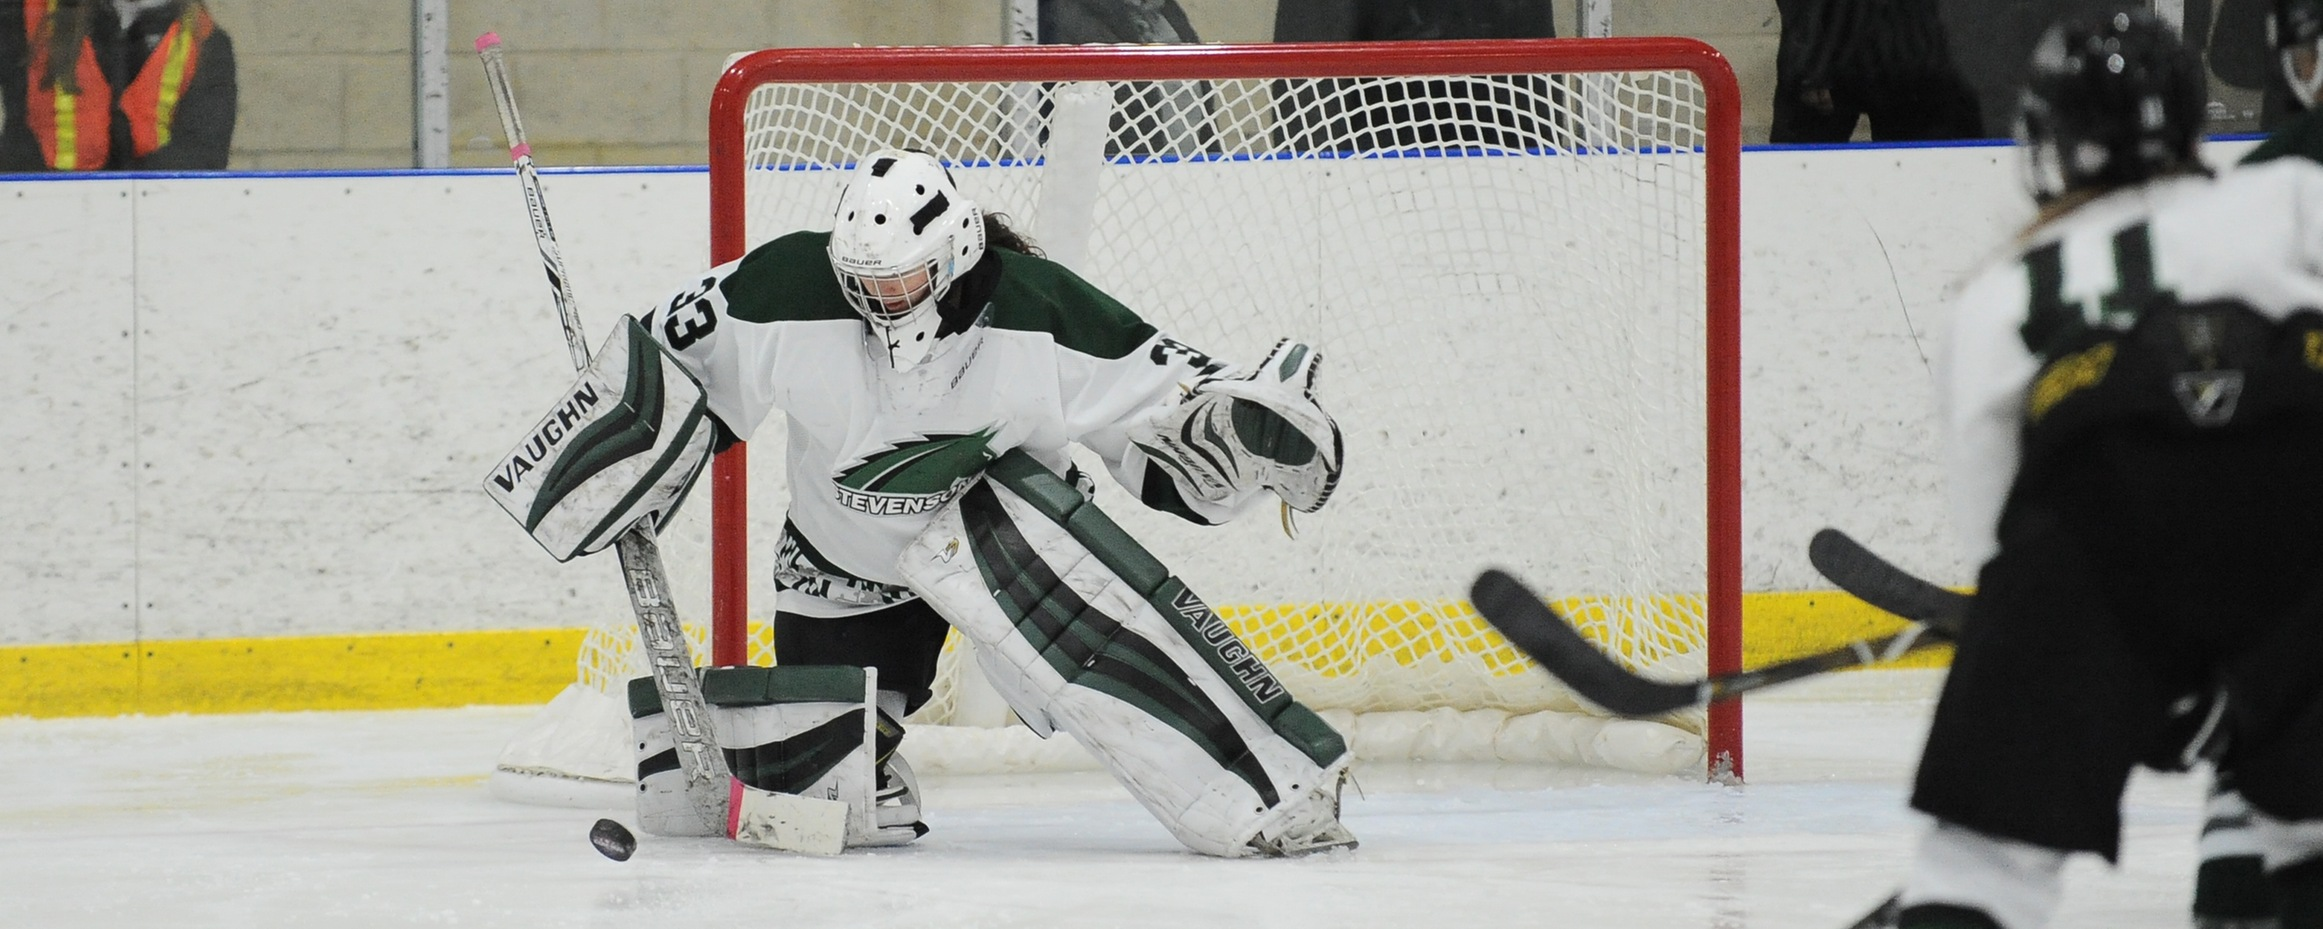 Smyth-Hammond's 37 Saves Leads Mustangs in 1-1 Tie at UMass Boston